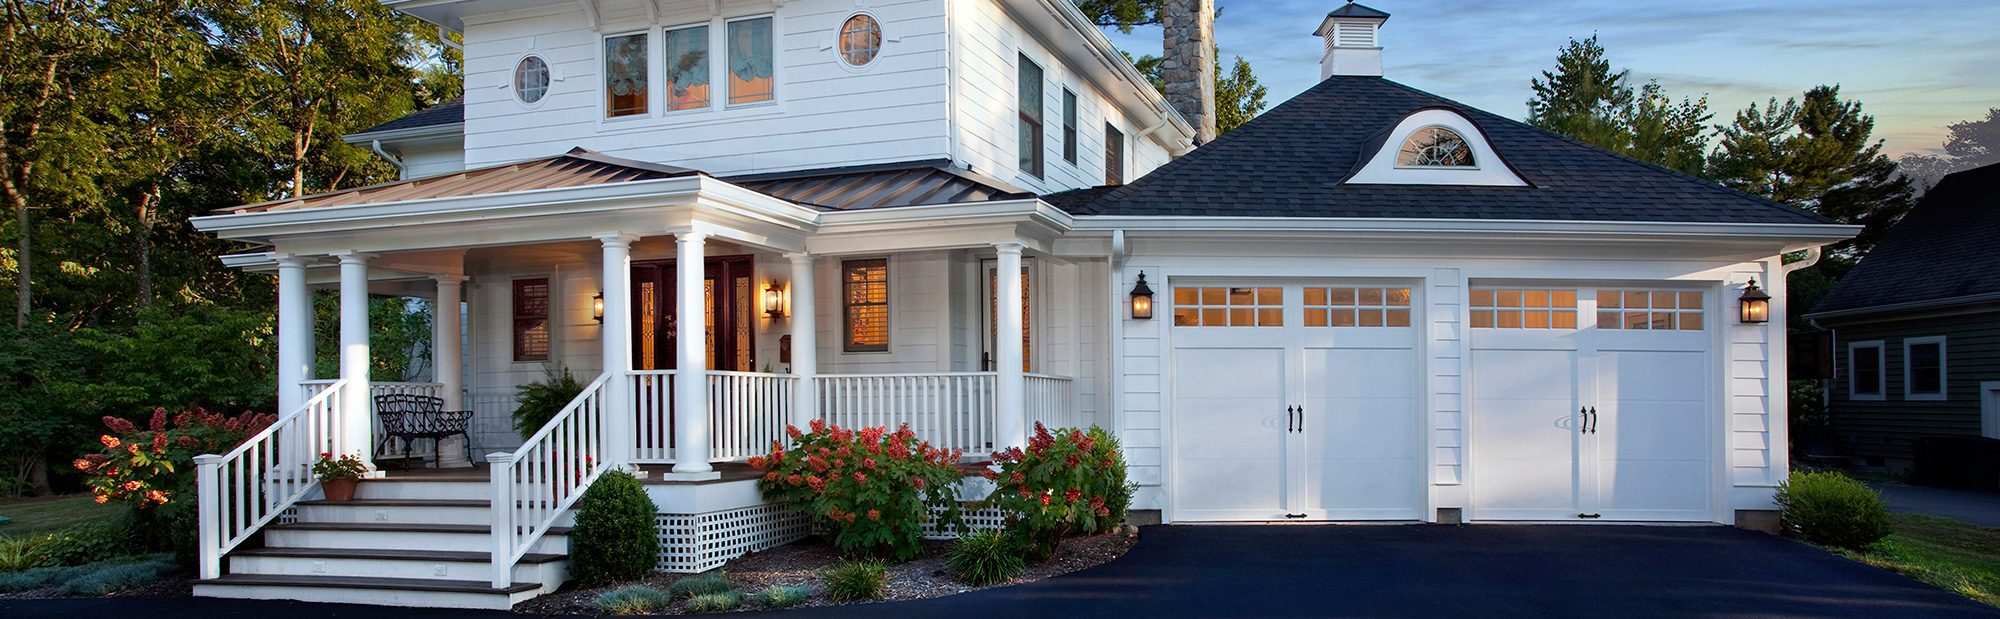 Same Day Service For All Your Garage Door Needs